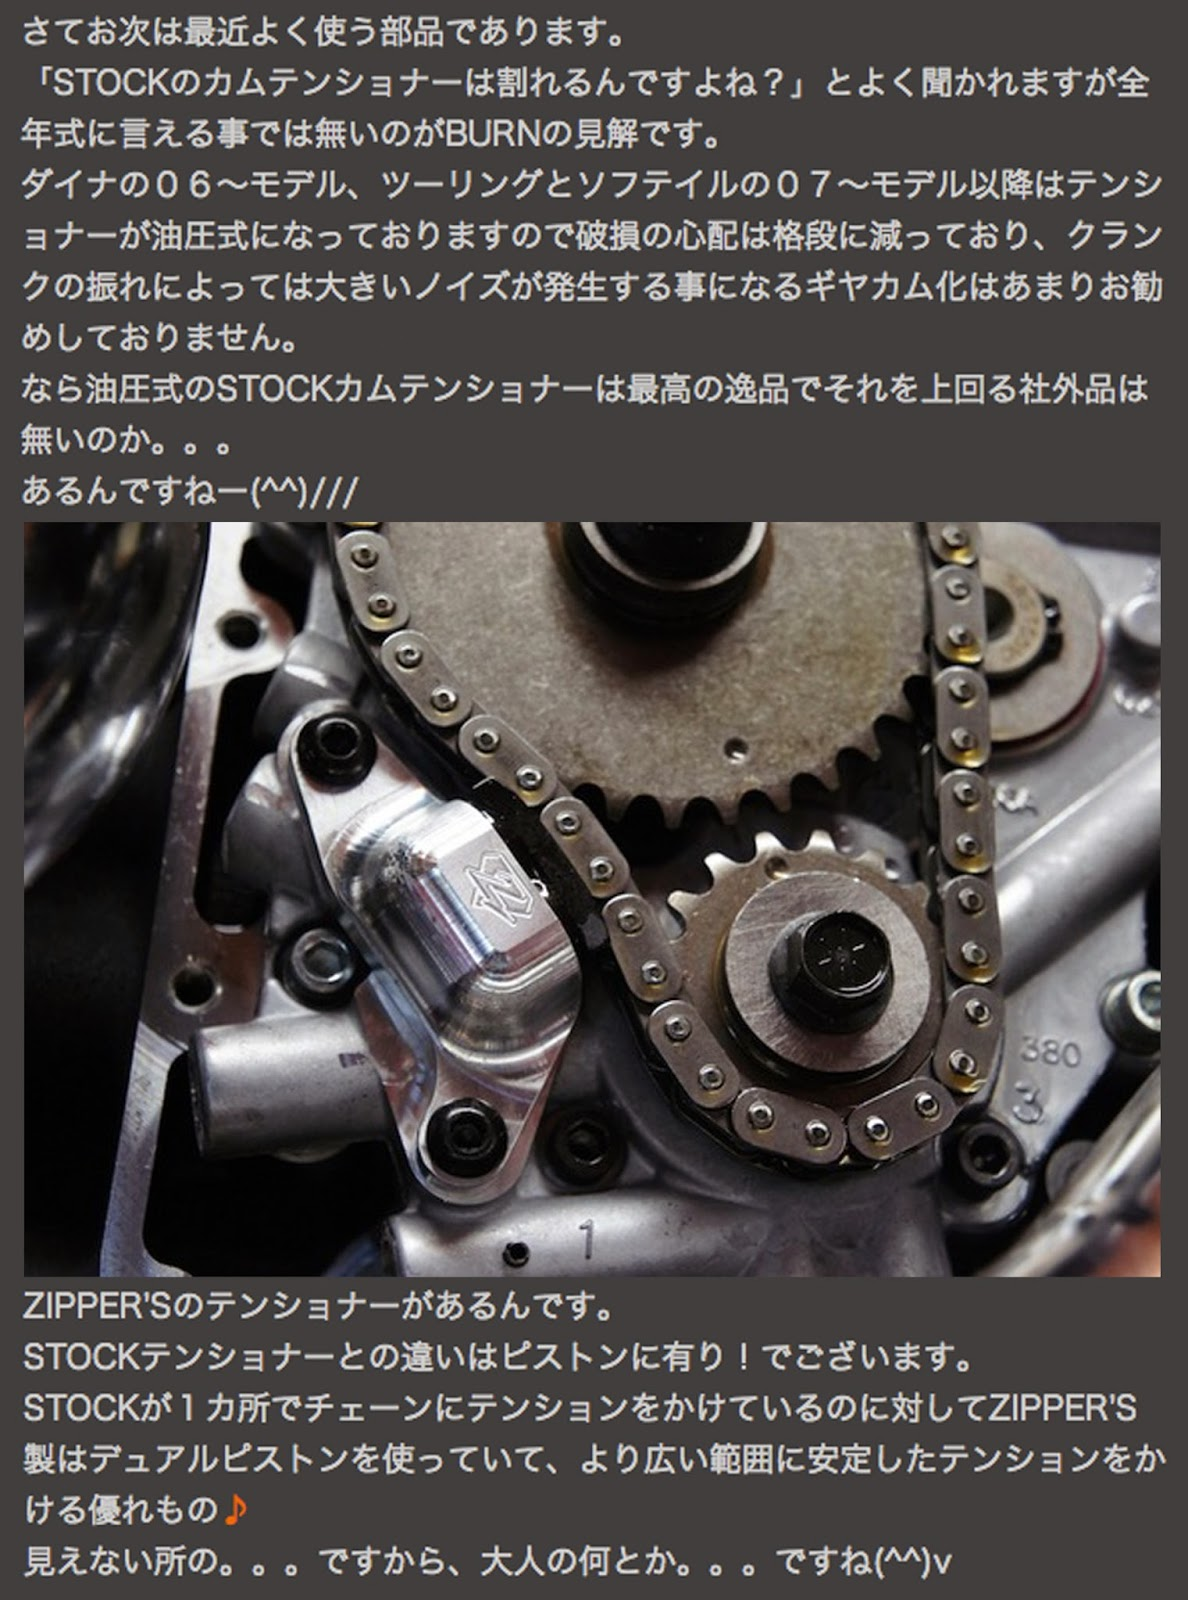 New From Zippers Performance Products Axtell Oil Bypass Valve Harley Twin Cam Chain Tensioner On Davidson 103 Engine Diagram H D Sports In Japan Posted Their Blog A Review Of Our Red Shift Tensioners Click The Image Below To Check It Out Or Here Go Directly